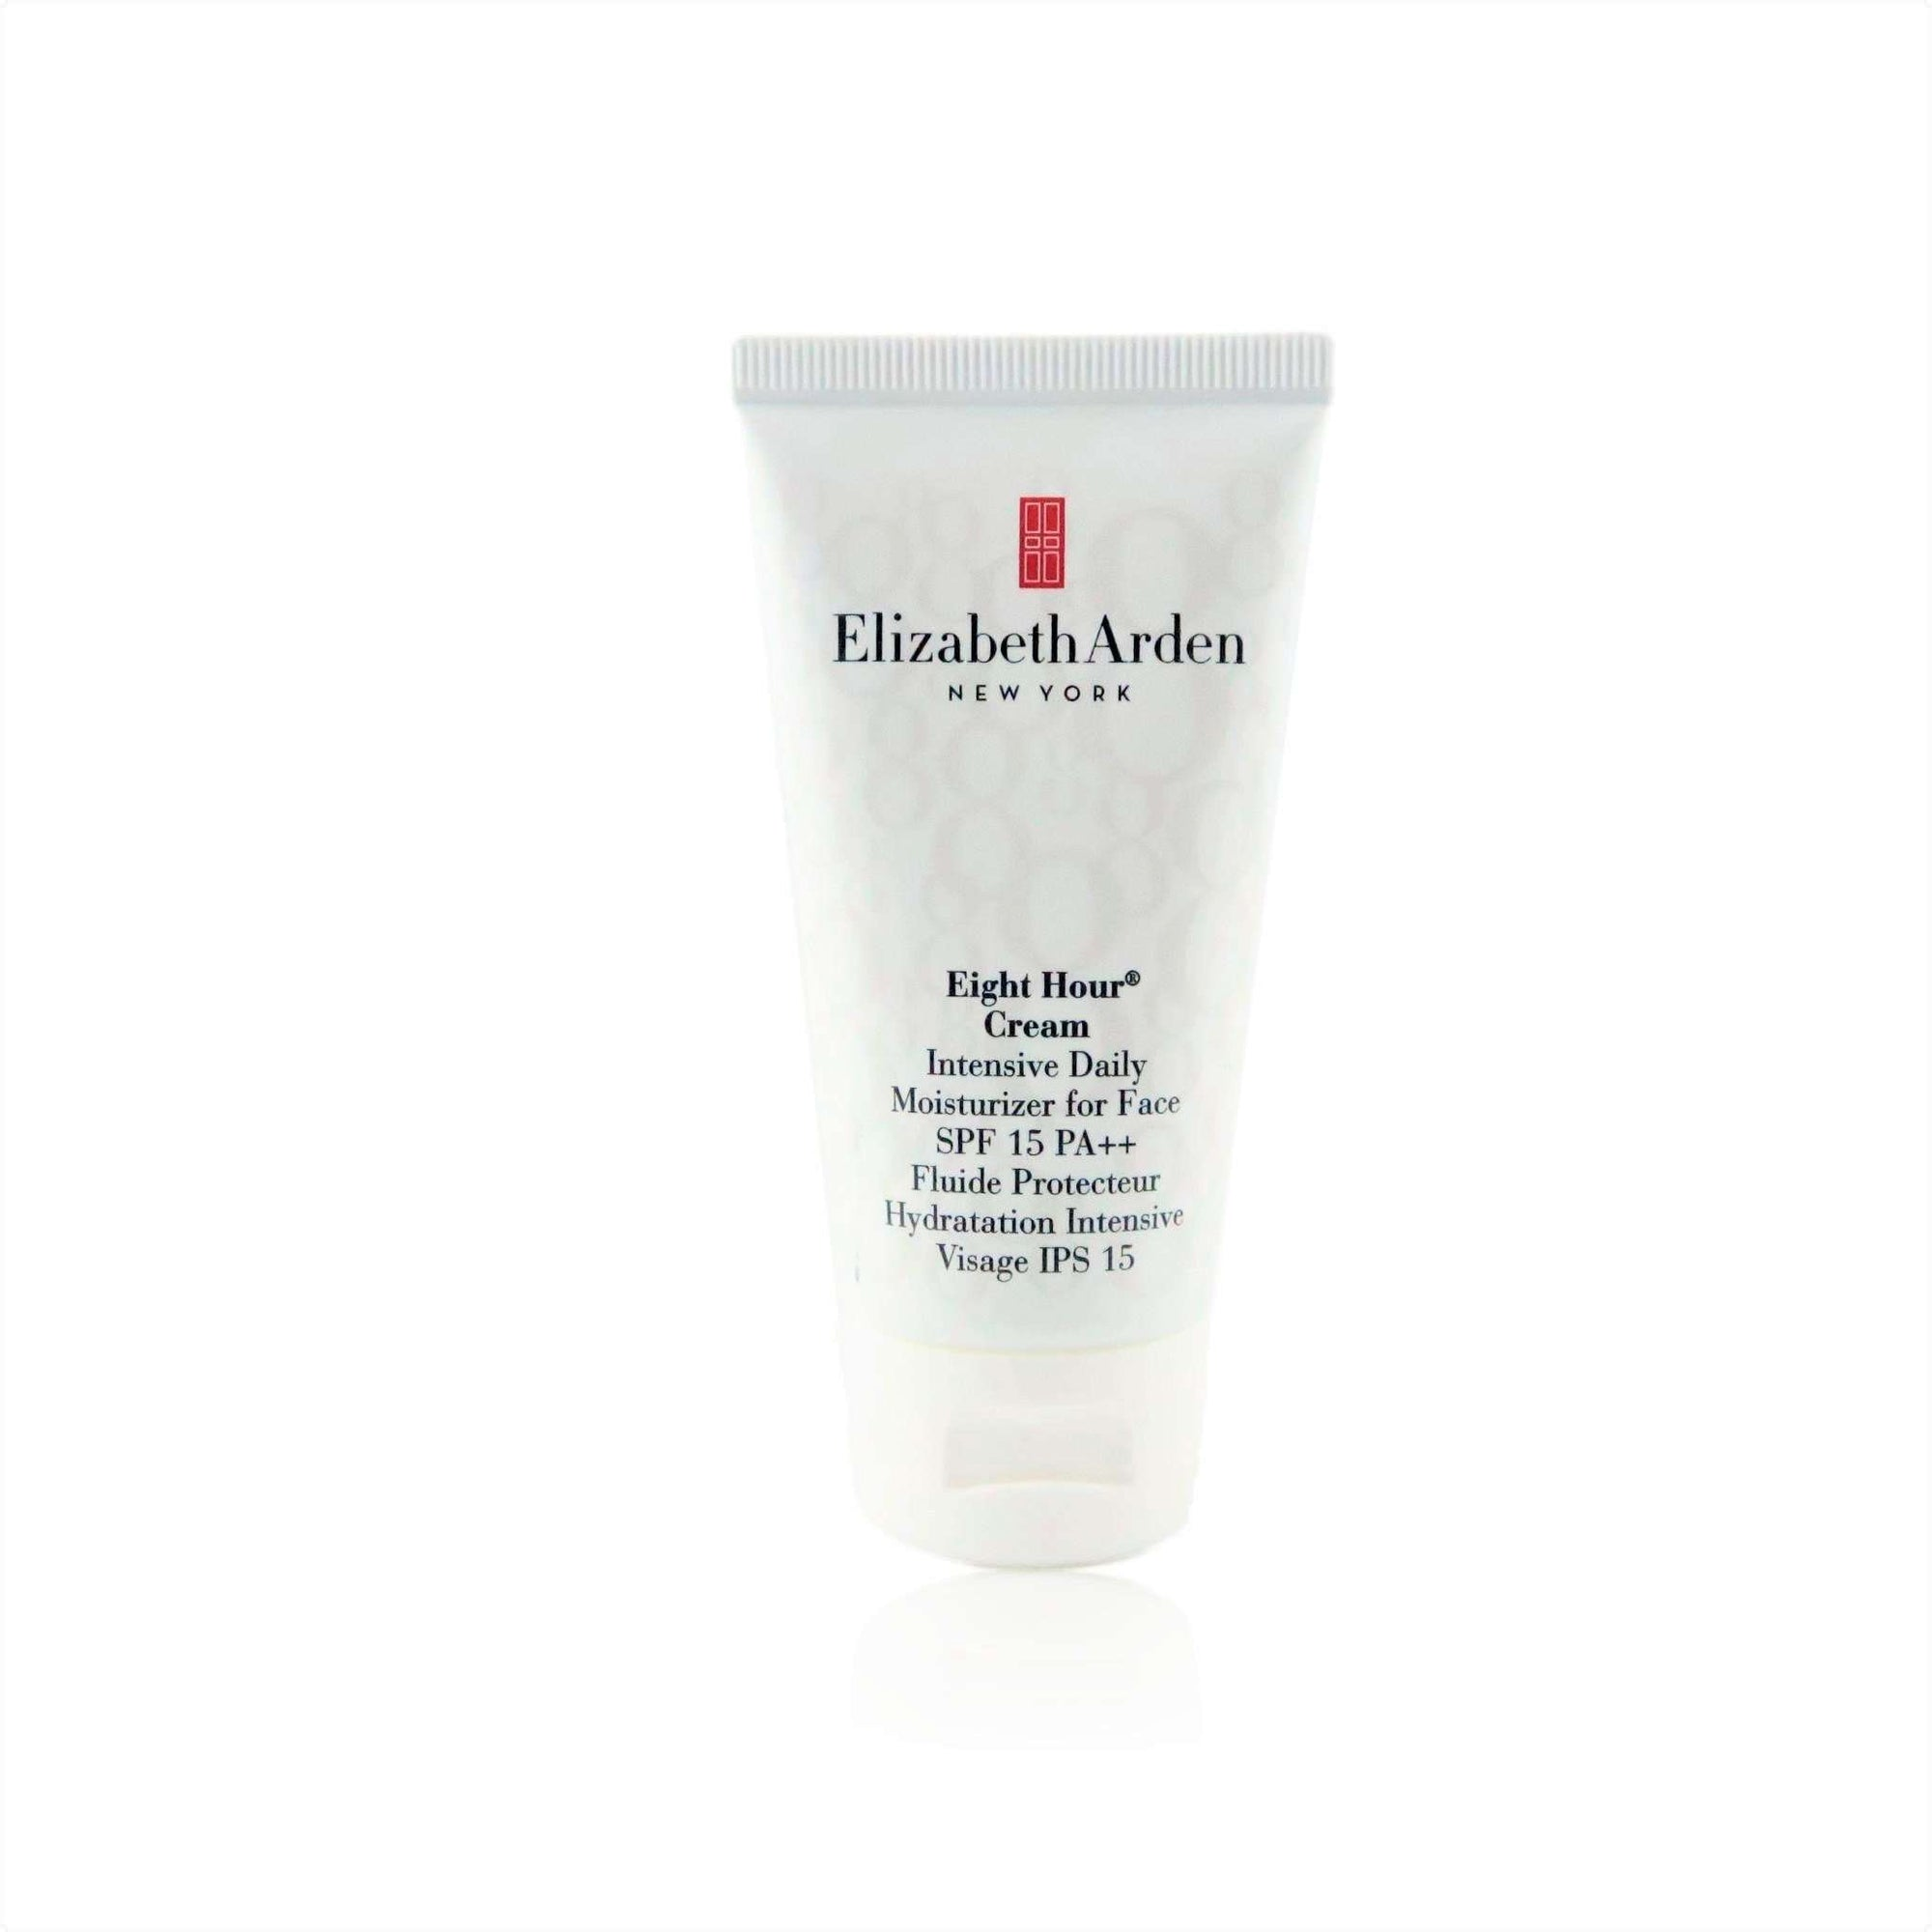 Elizabeth Arden Intensive Daily Moisturiser For Face SPF15